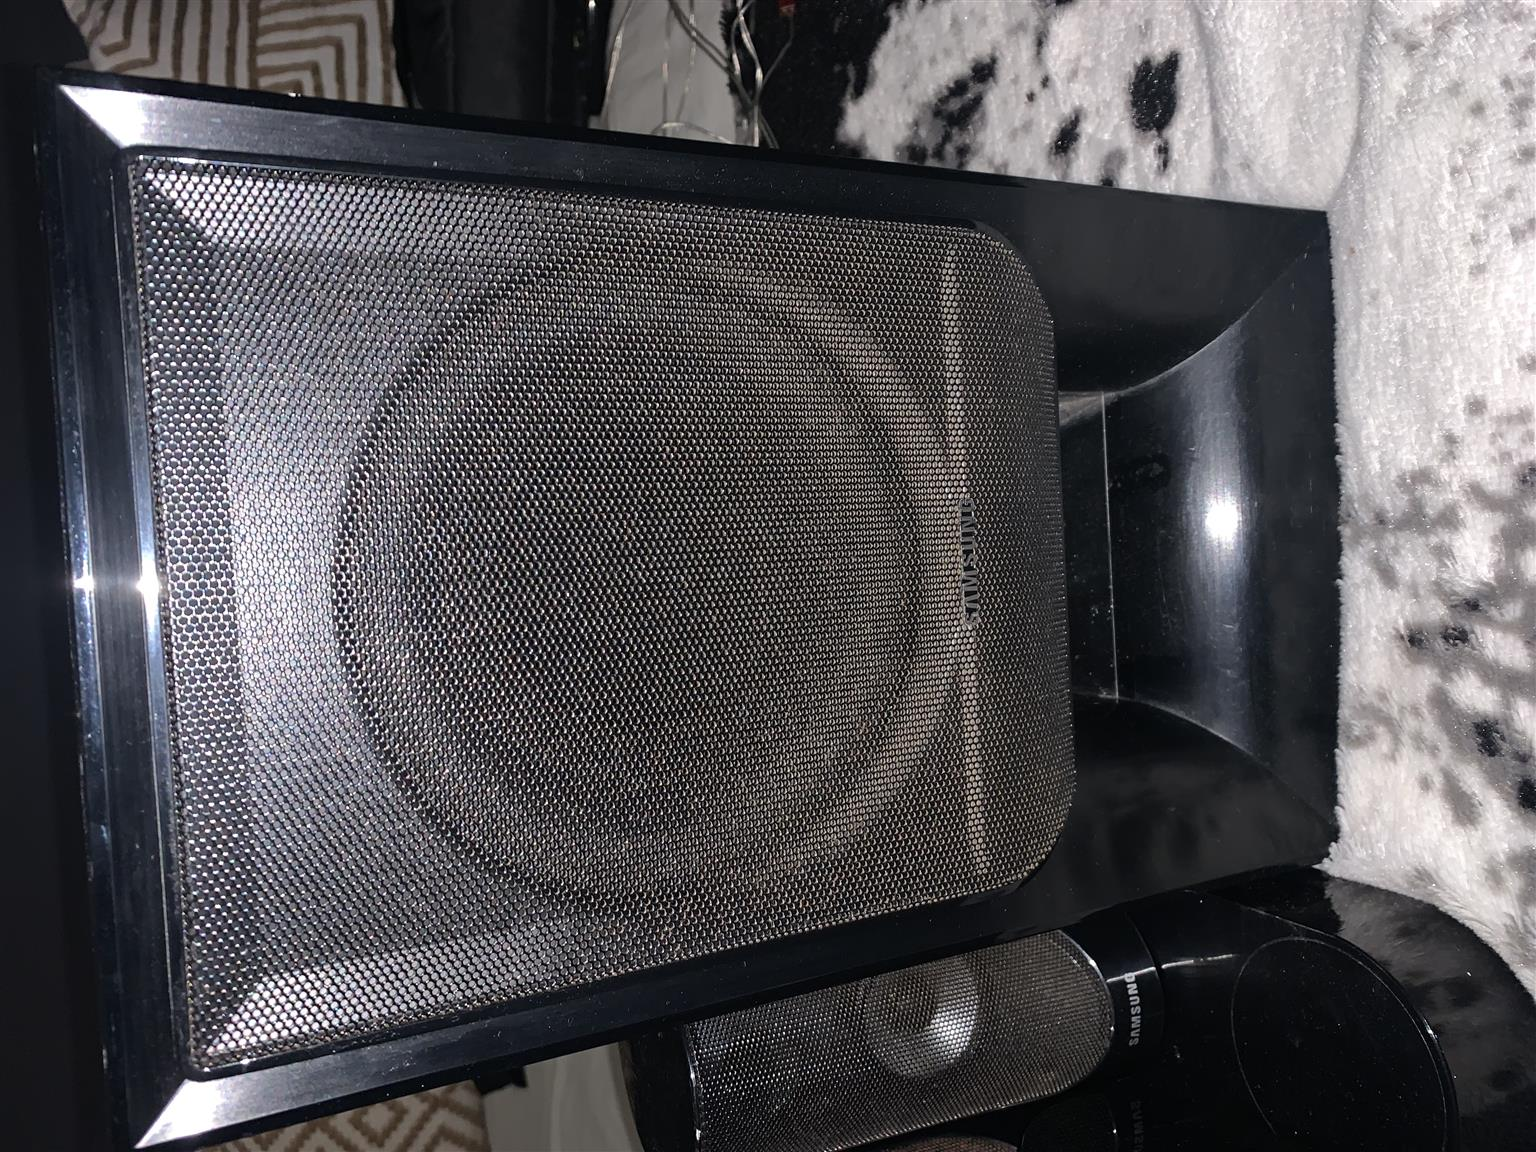 Samsung  Home Theater System - BLU-RAY